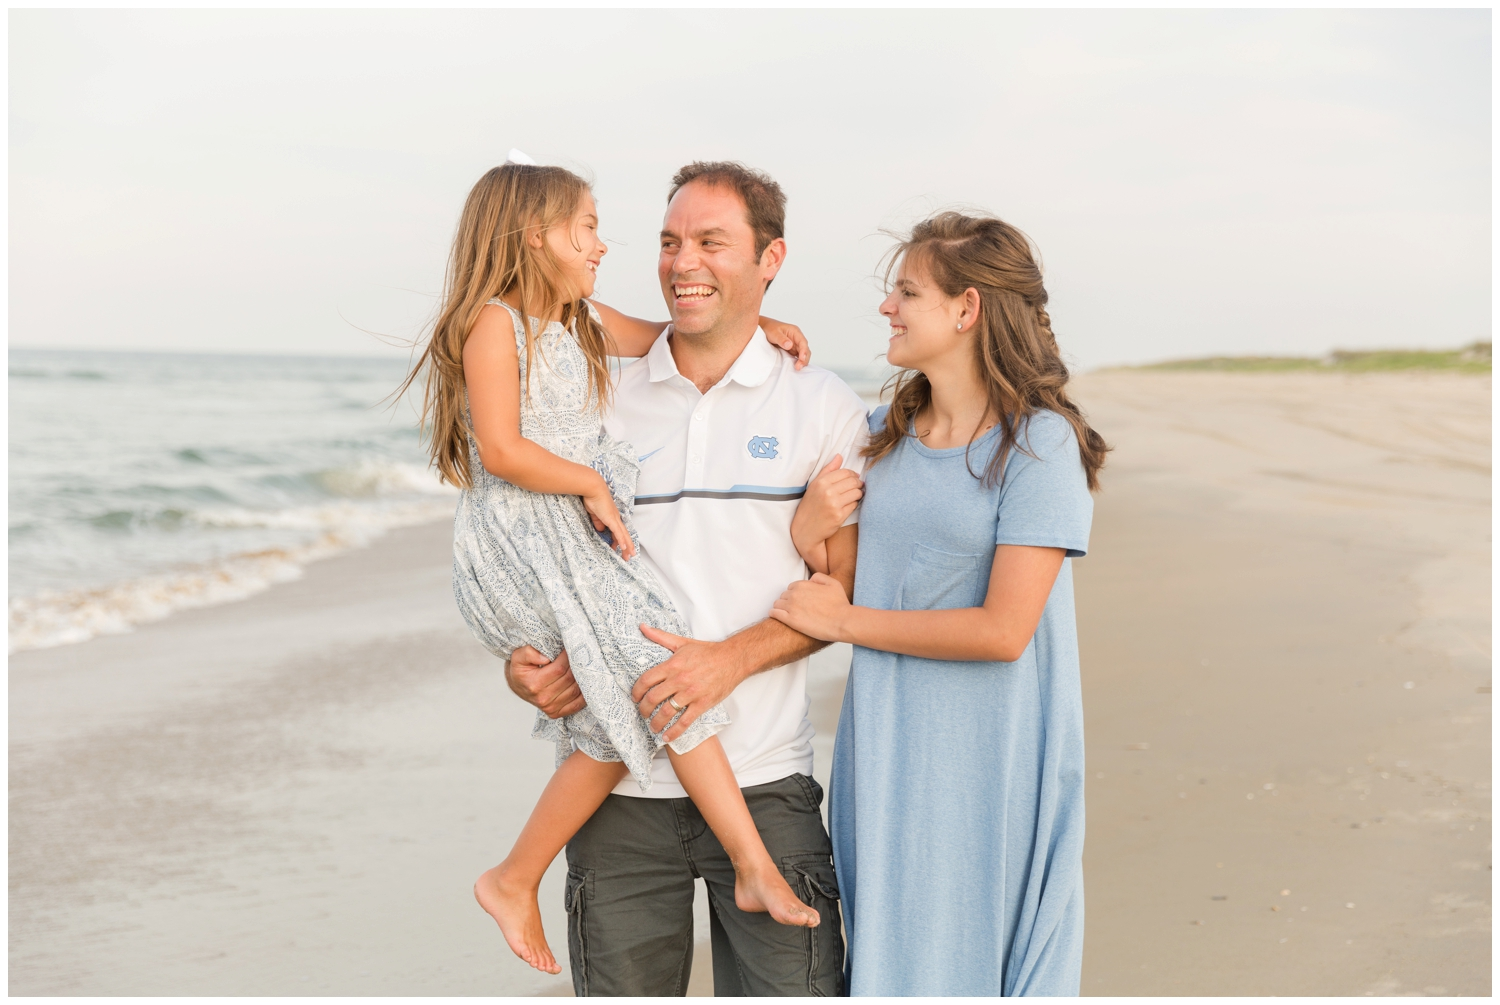 elovephotos virginia beach sandbridge family photographer_0883.jpg